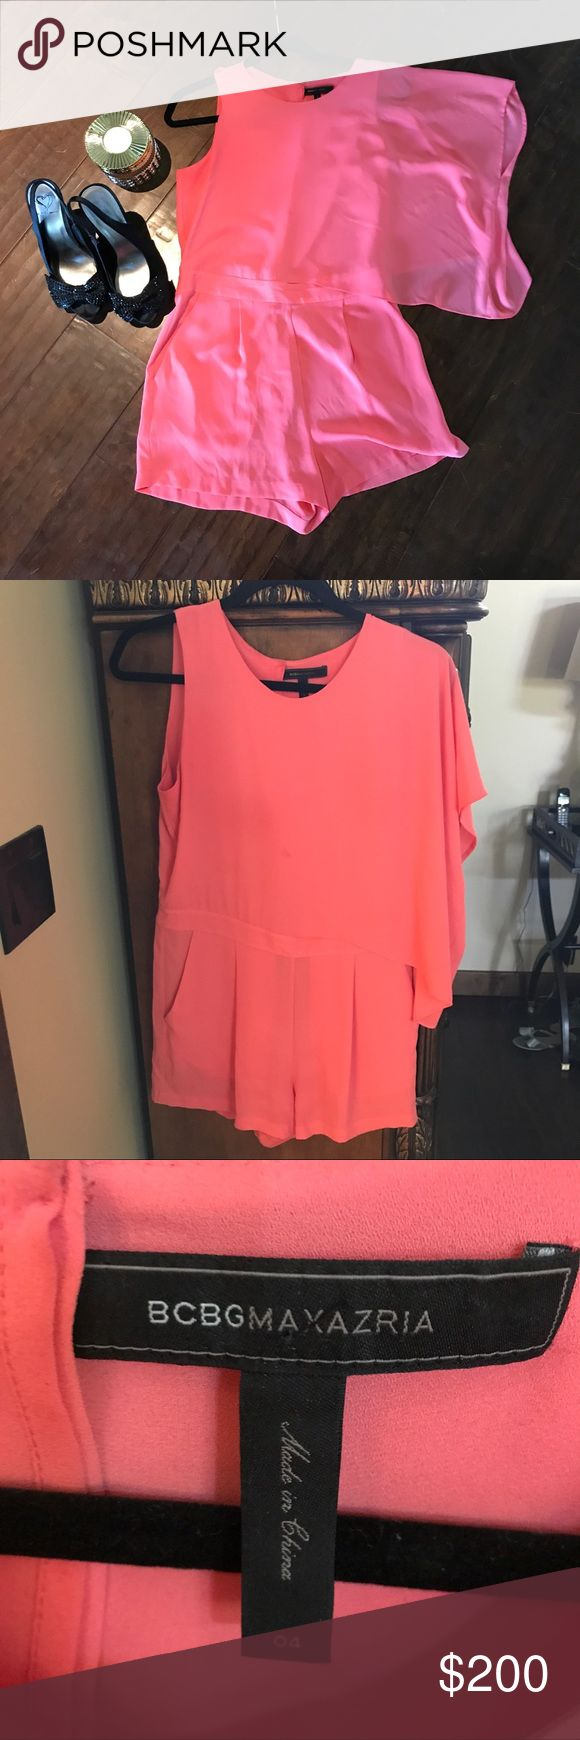 Coral Chiffon BCBG Romper This coral chiffon BCBG Romper is perfect for the summer!! It is chiffon material and the longer sleeve on one side is a big trend this season! Size 4! Can be worn for a fancy brunch or a cute pair of flats for day wear!! BCBGMaxAzria Pants Jumpsuits & Rompers